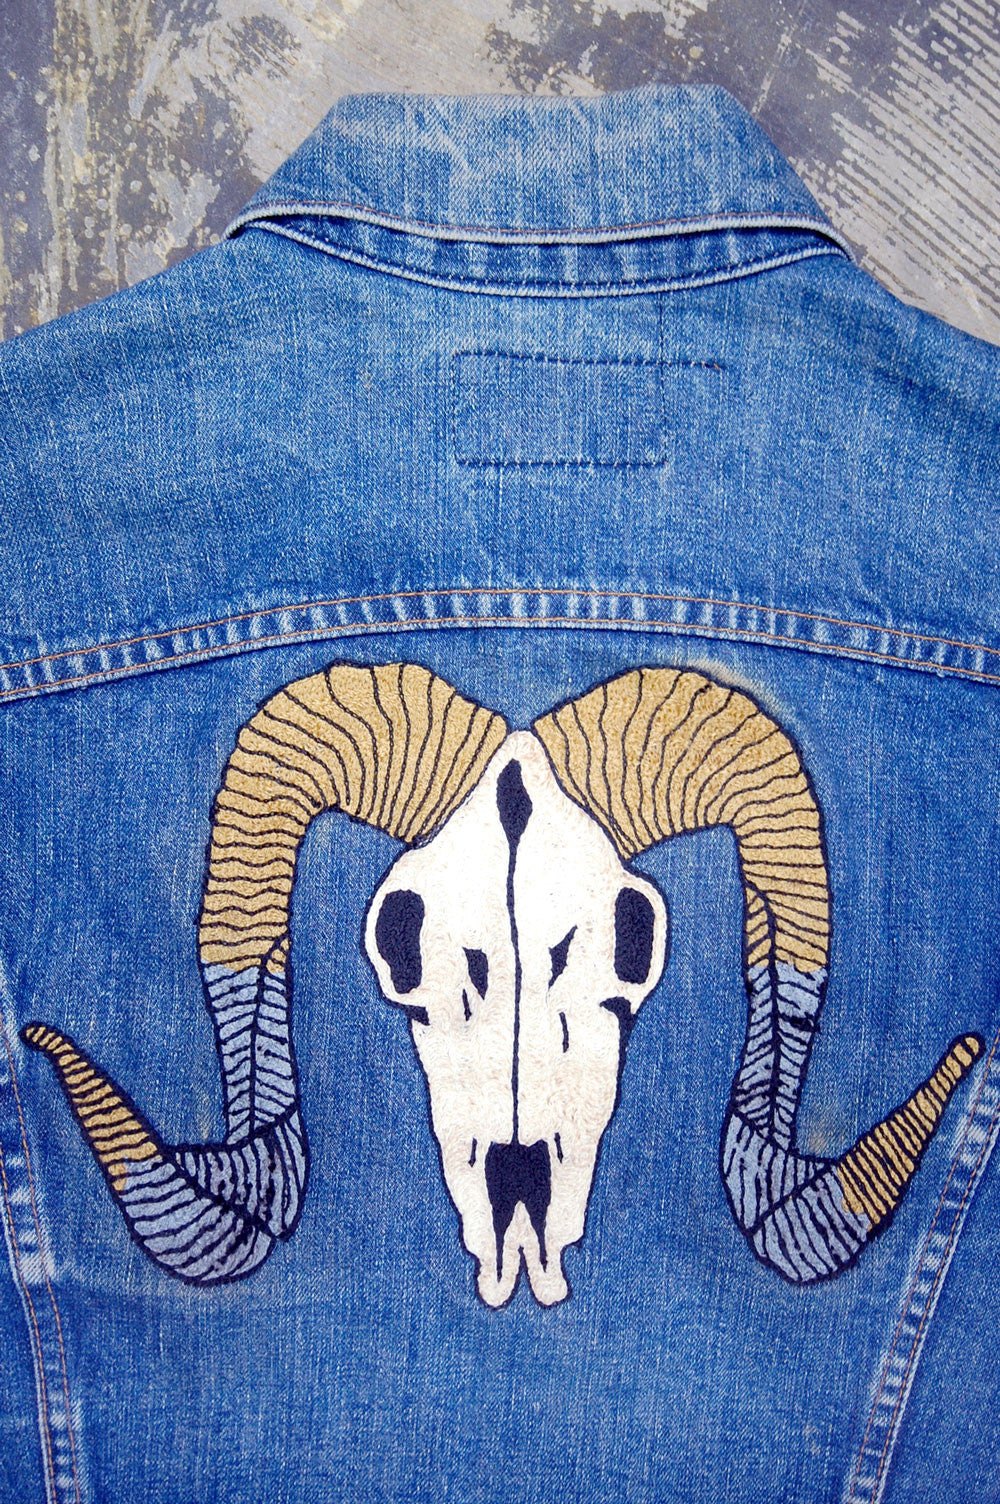 Vintage Levi's 2-Pocket USA Chain-Stitched Ram Skull Artwork Denim Trucker Jacket